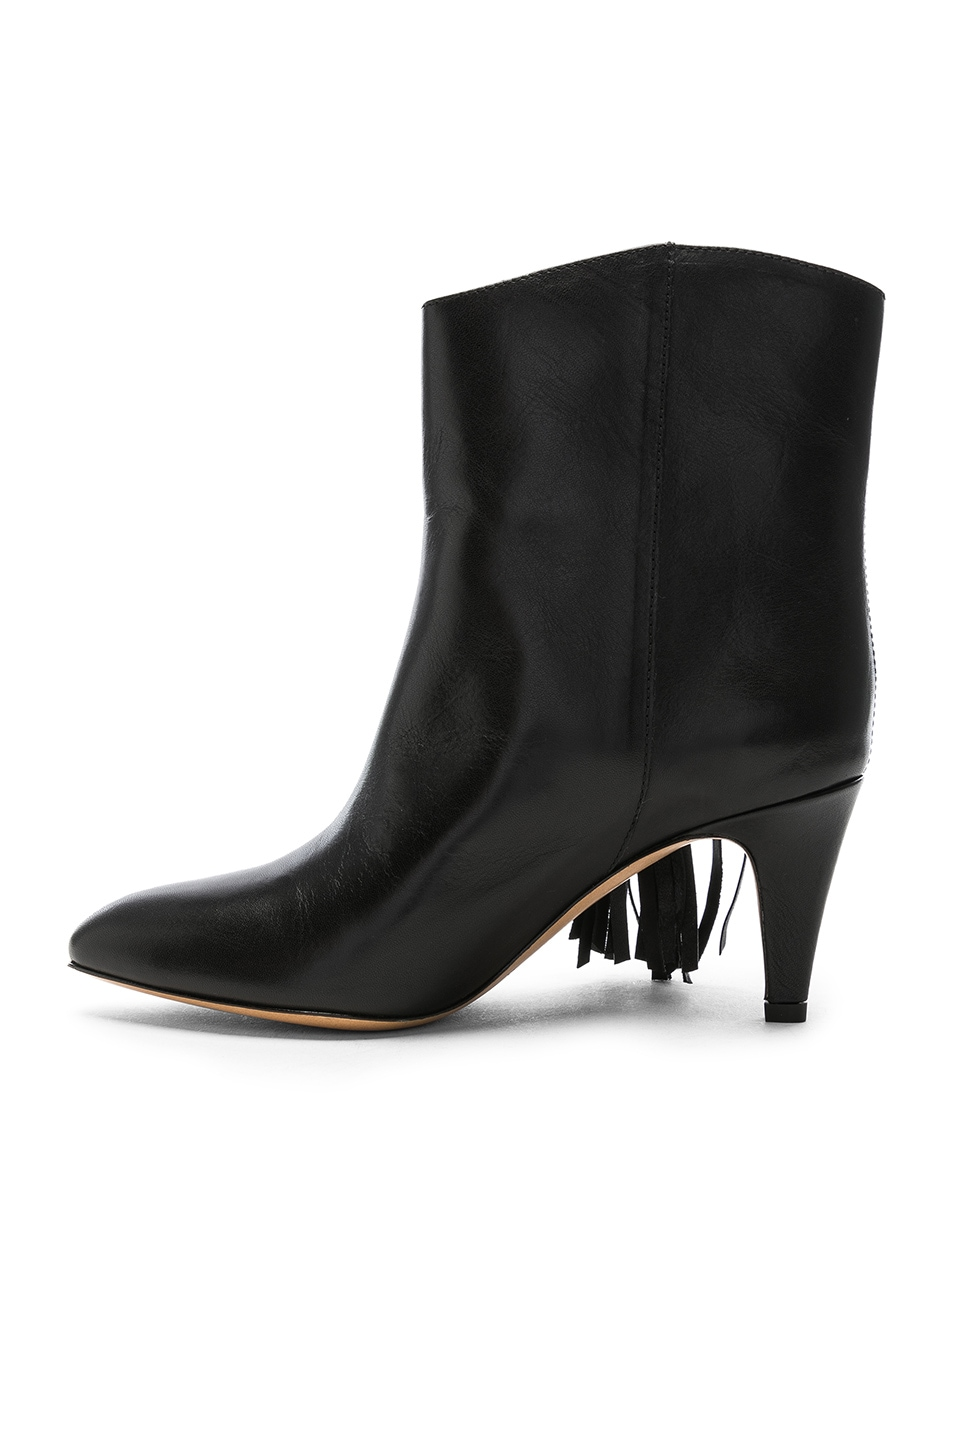 Image 5 of Isabel Marant Leather Dringe Boots in Black